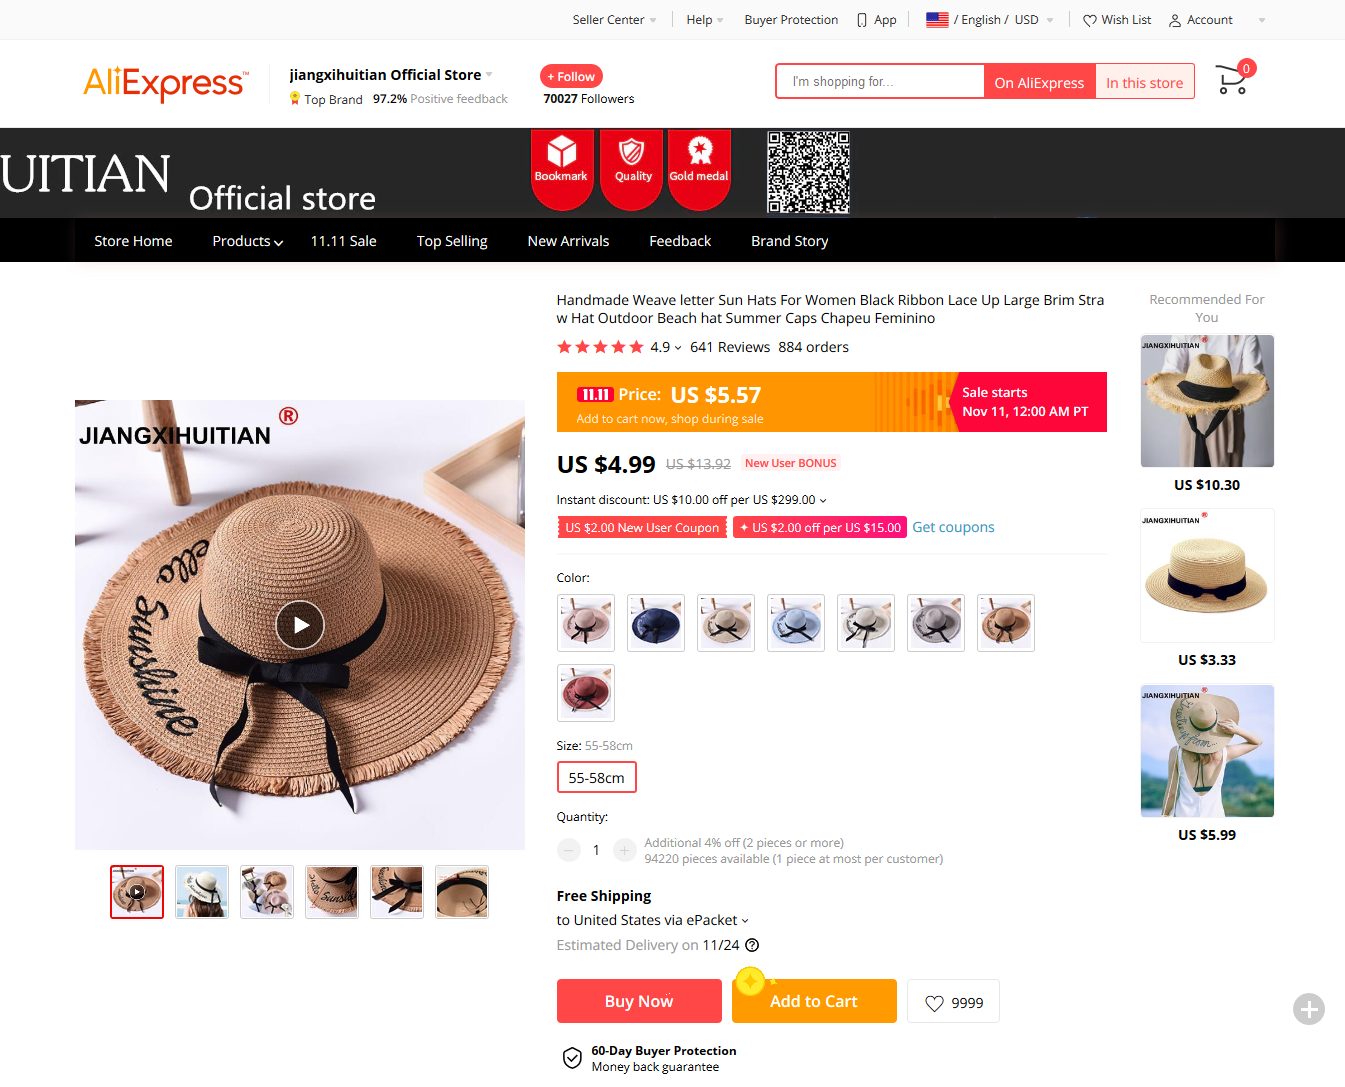 aliexpress-product-page